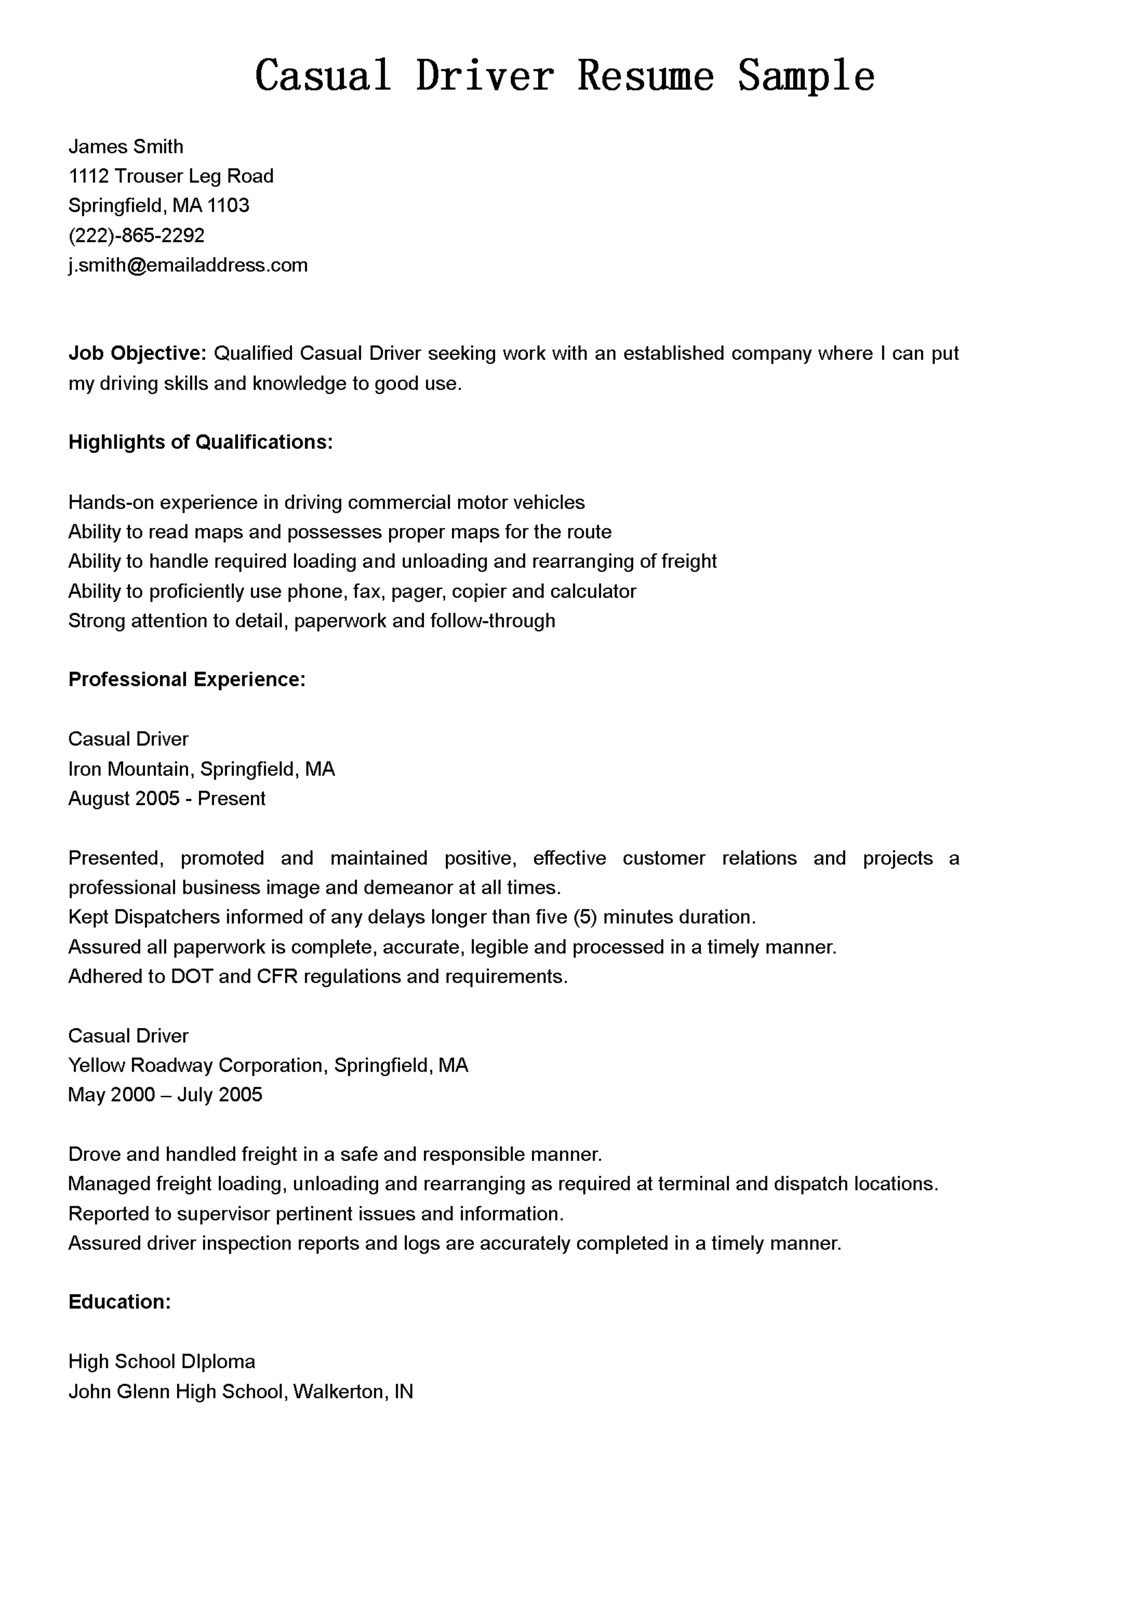 Driver recruiter sample resume